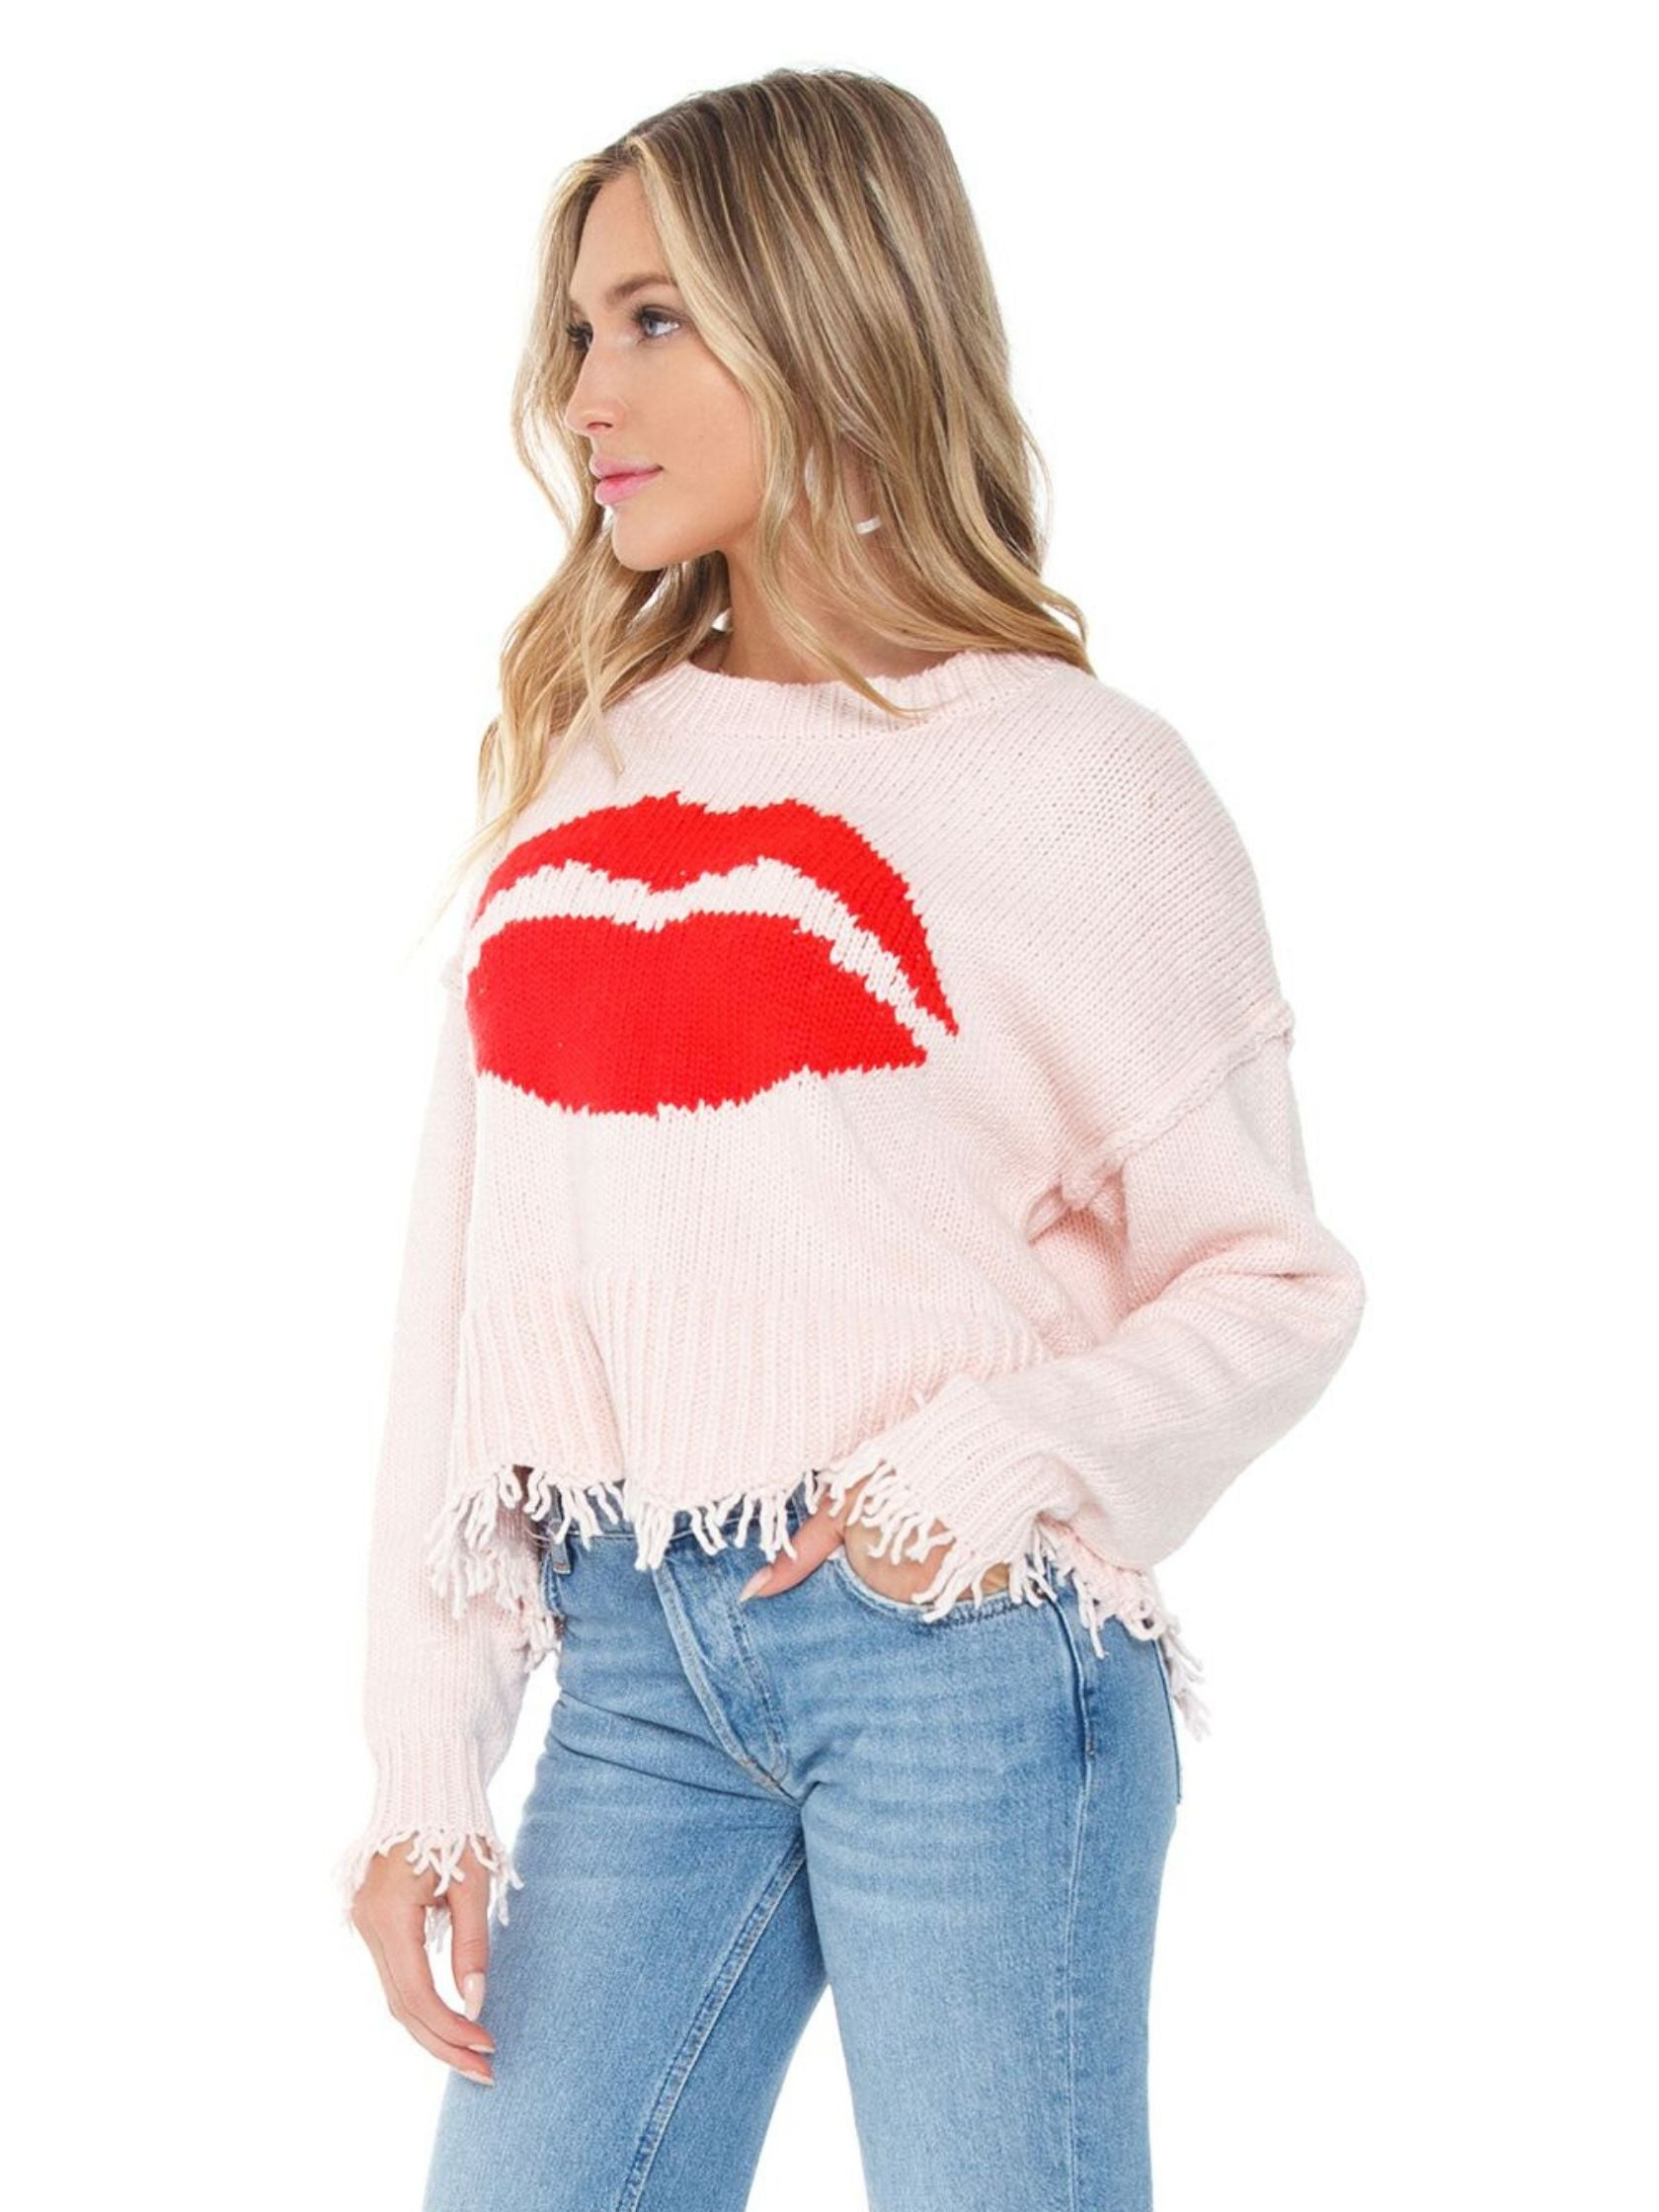 Women wearing a sweater rental from Wildfox called First Kiss Luna Sweater